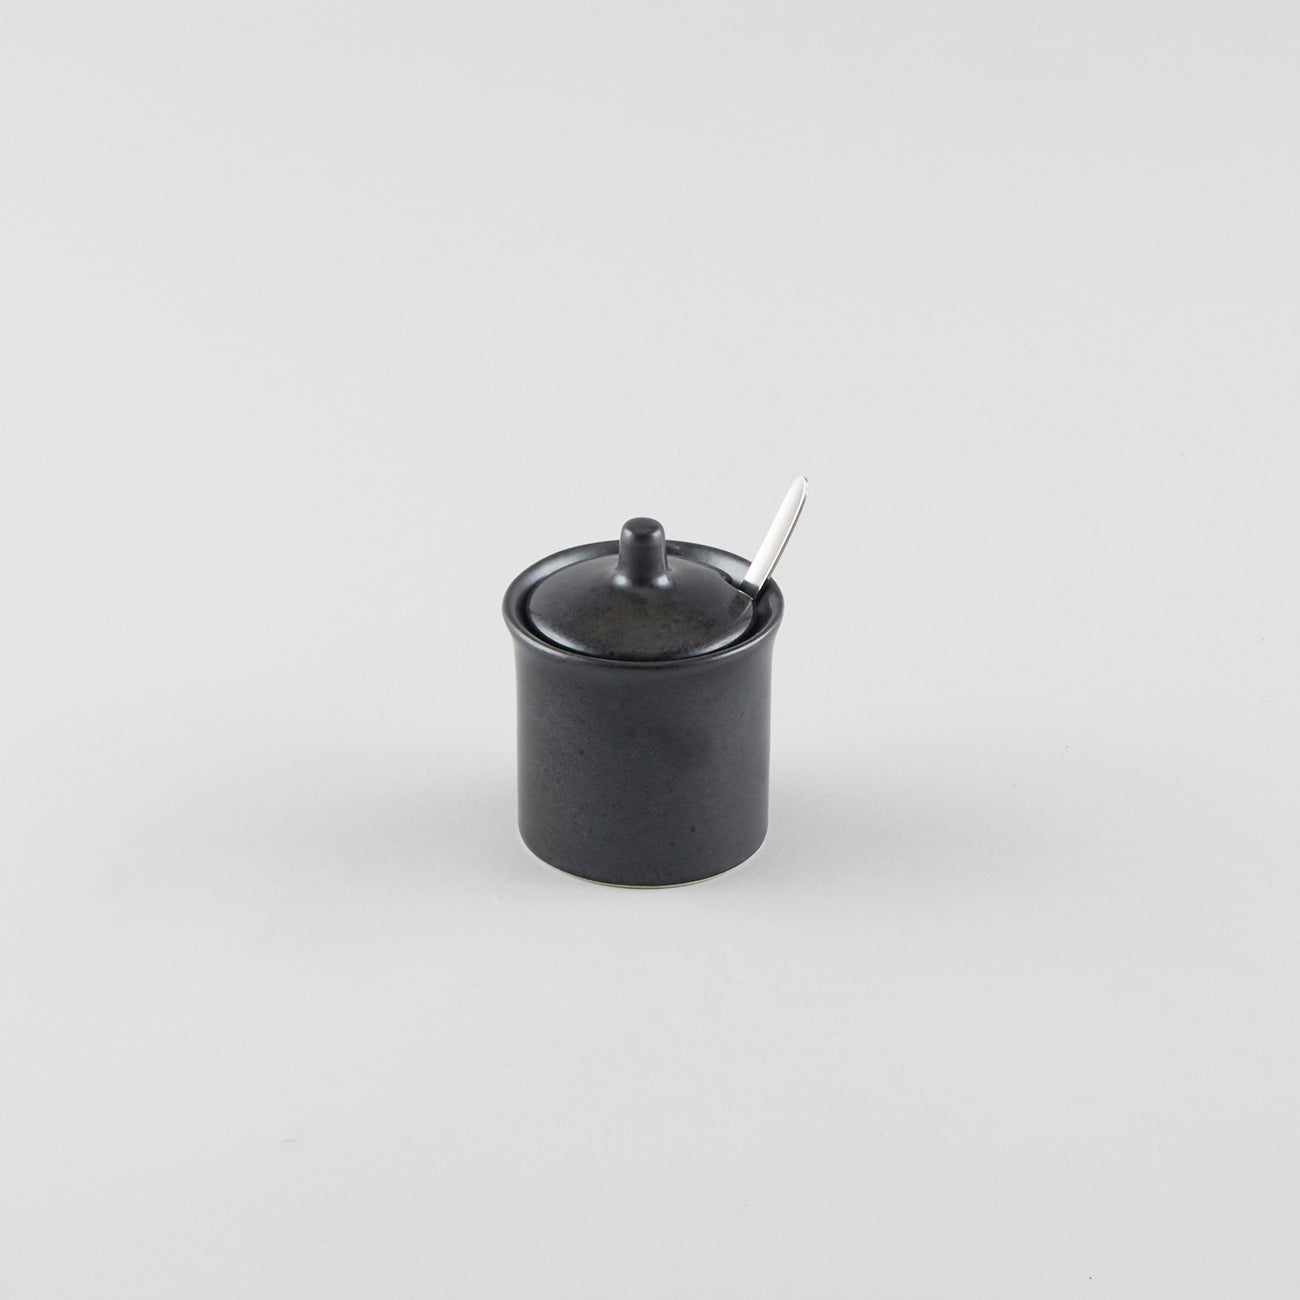 Chili Pepper/Sugar Pot Black (No Spoon)